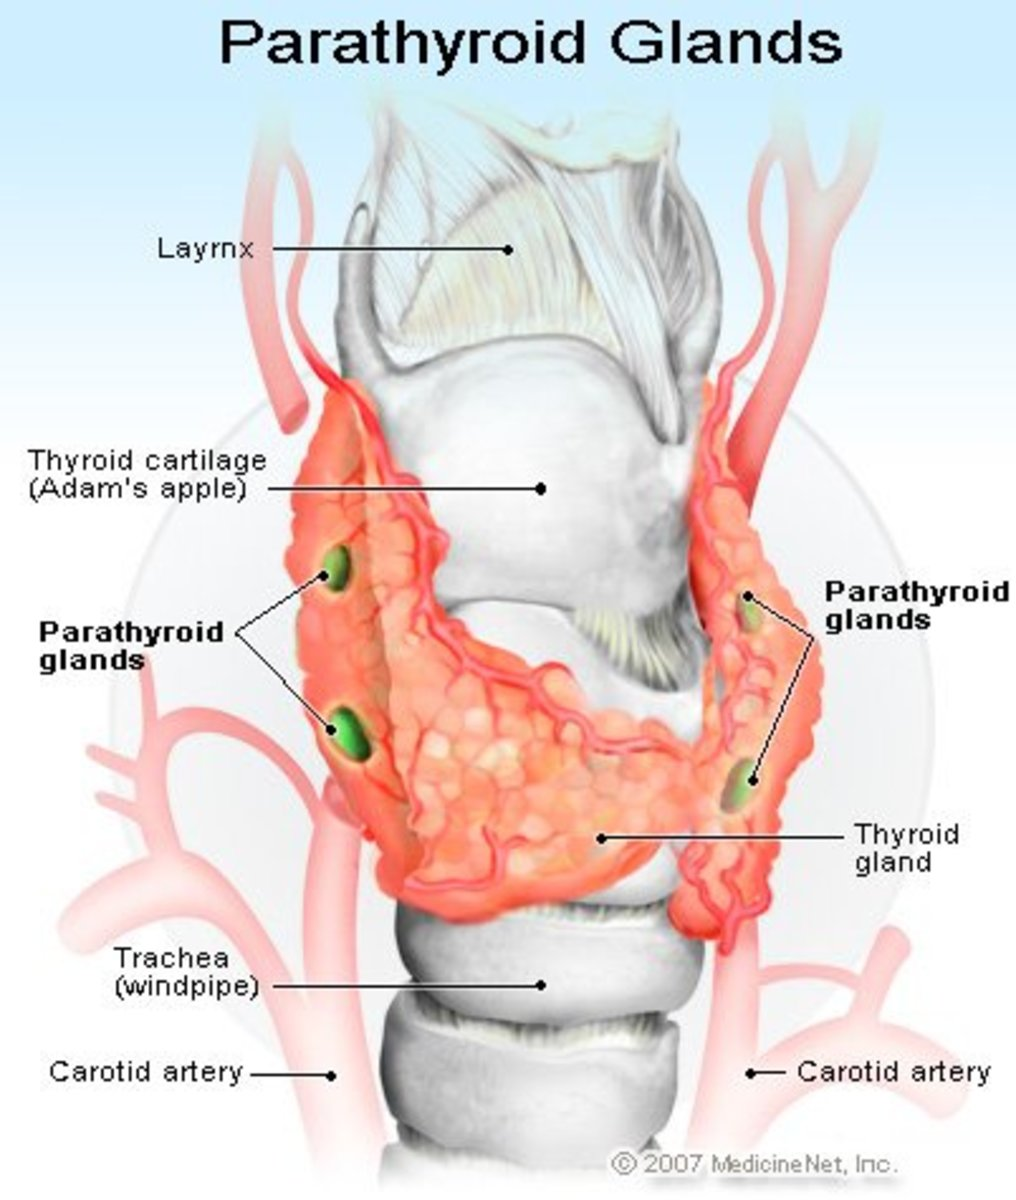 When pathological hypersecretion of PTH occurs persistently, it results in hyperparathyroidism.